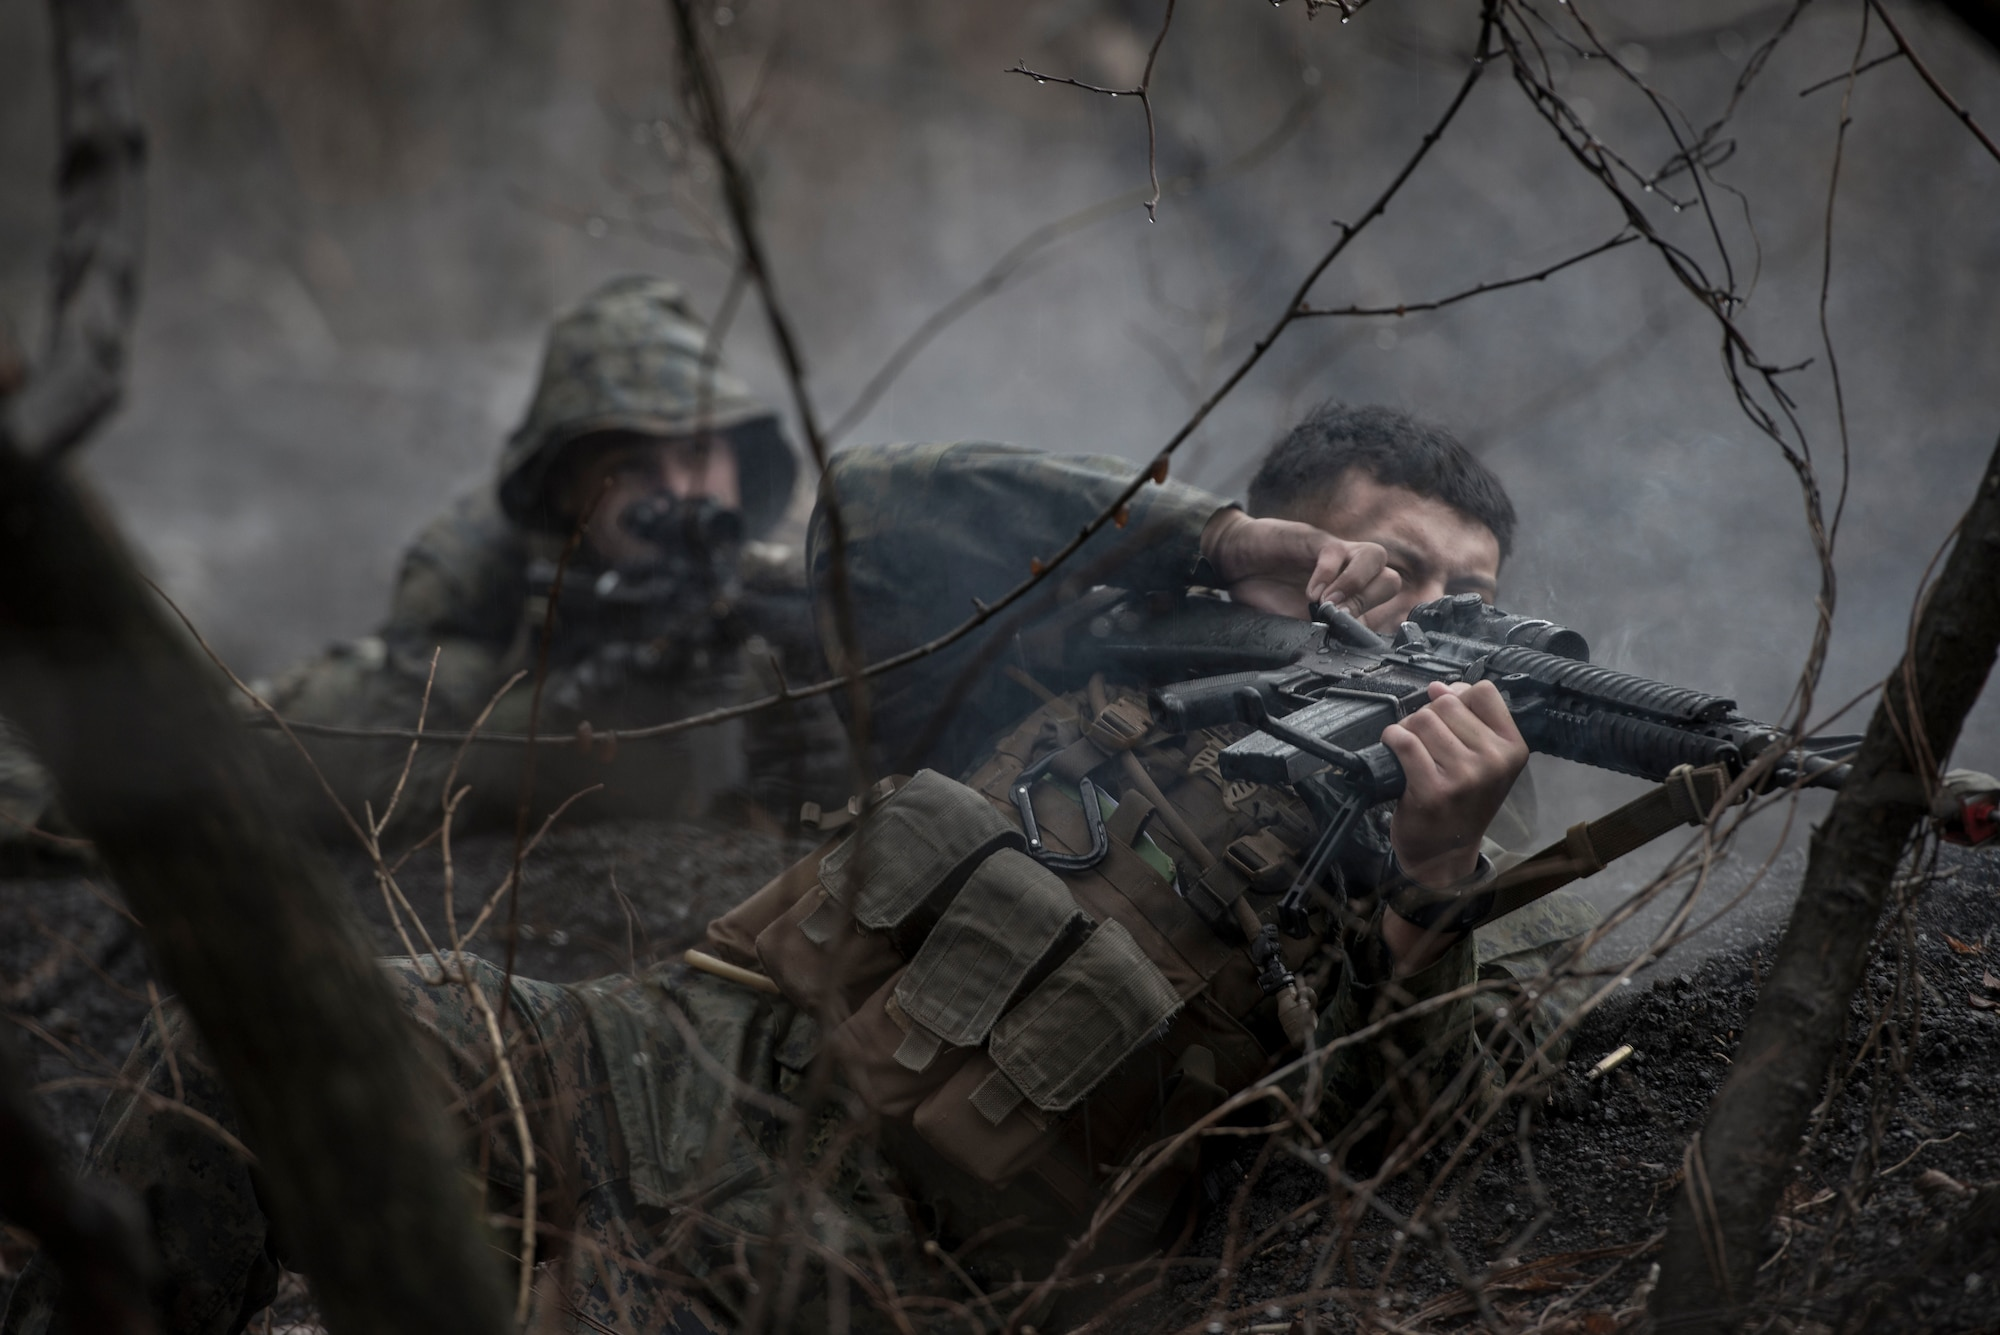 """A Marine with the 1st Batallion, 1st Marines, pulls the firing bolt on his weapon while in a simulated small-arms fire exchange Jan. 16, 2015 at Camp Fuji, Japan. The Marines, who were acting as enemy aggressors searching for Air Force aircrew during survival, evasion, resistance and escape training, also practiced their small arms engagement with a """"rescue"""" team of Marines. (U.S. Air Force photo/Staff Sgt. Cody H. Ramirez)"""